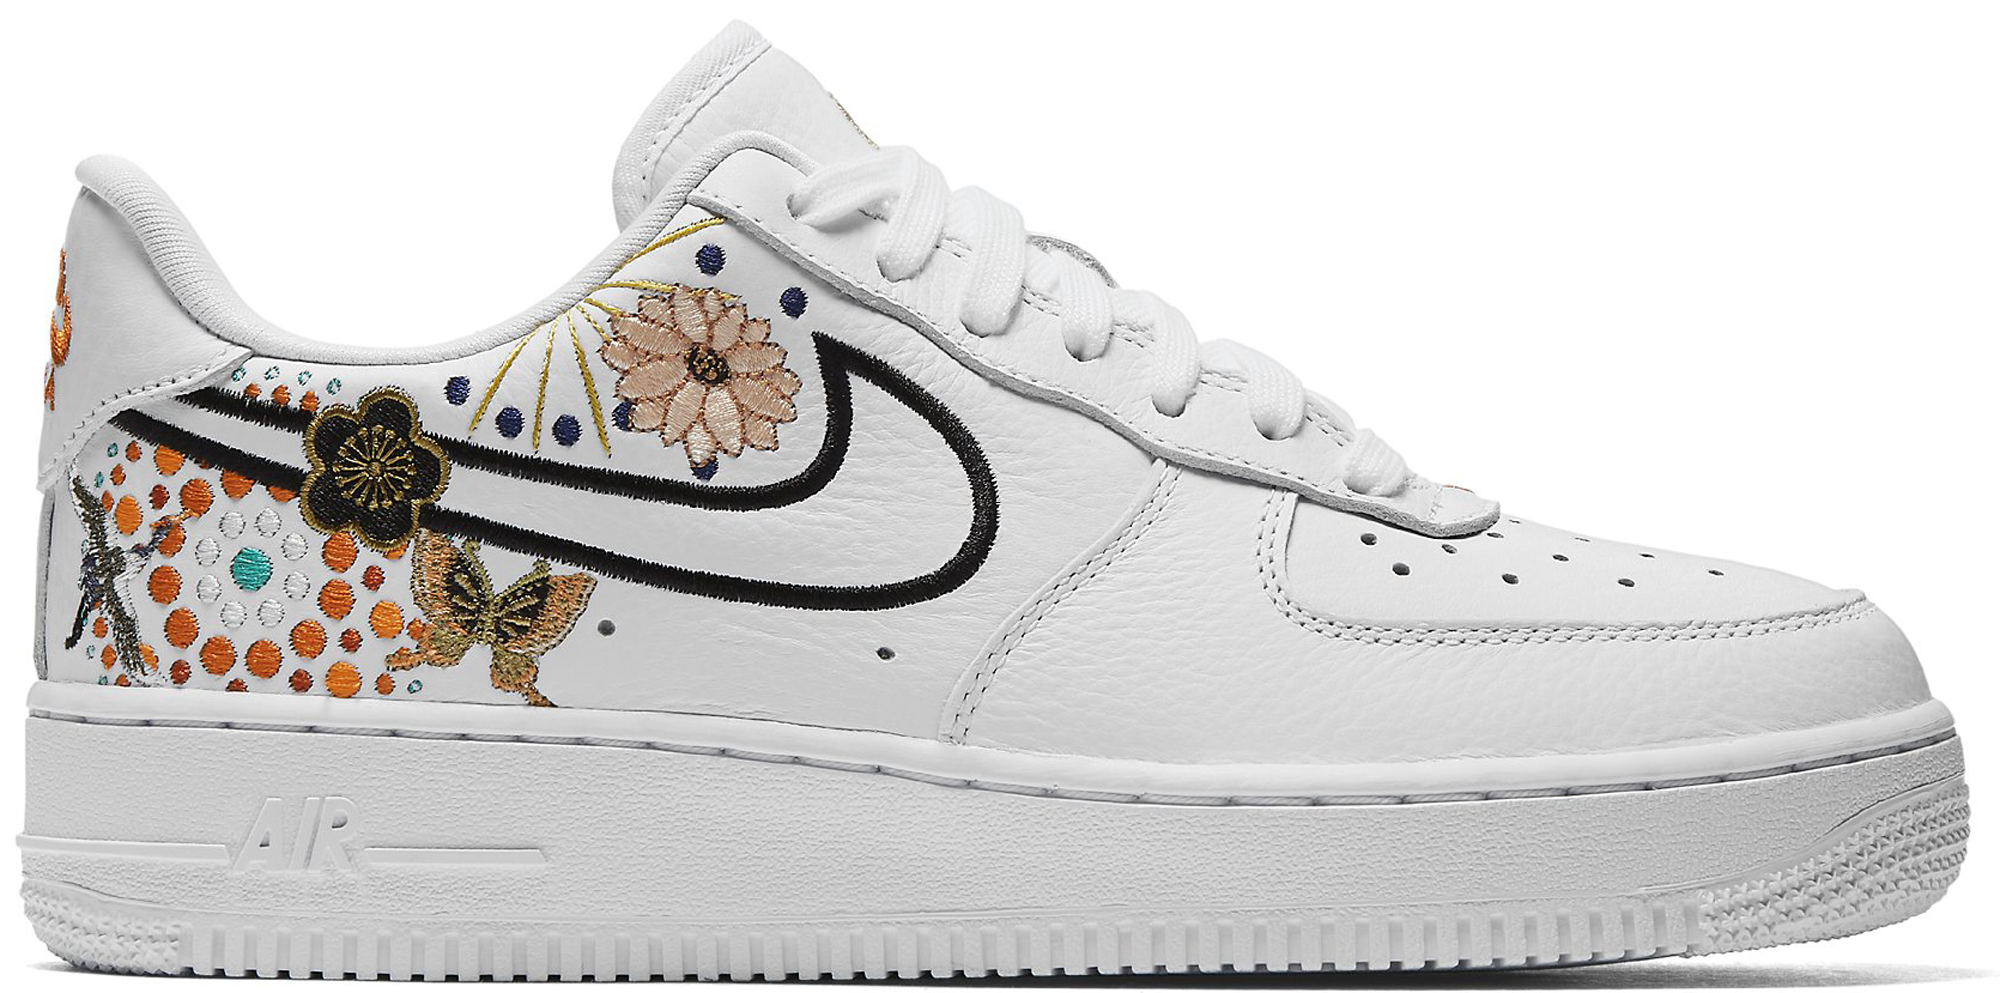 Air Force 1 Low Lunar New Year 2018 (W)